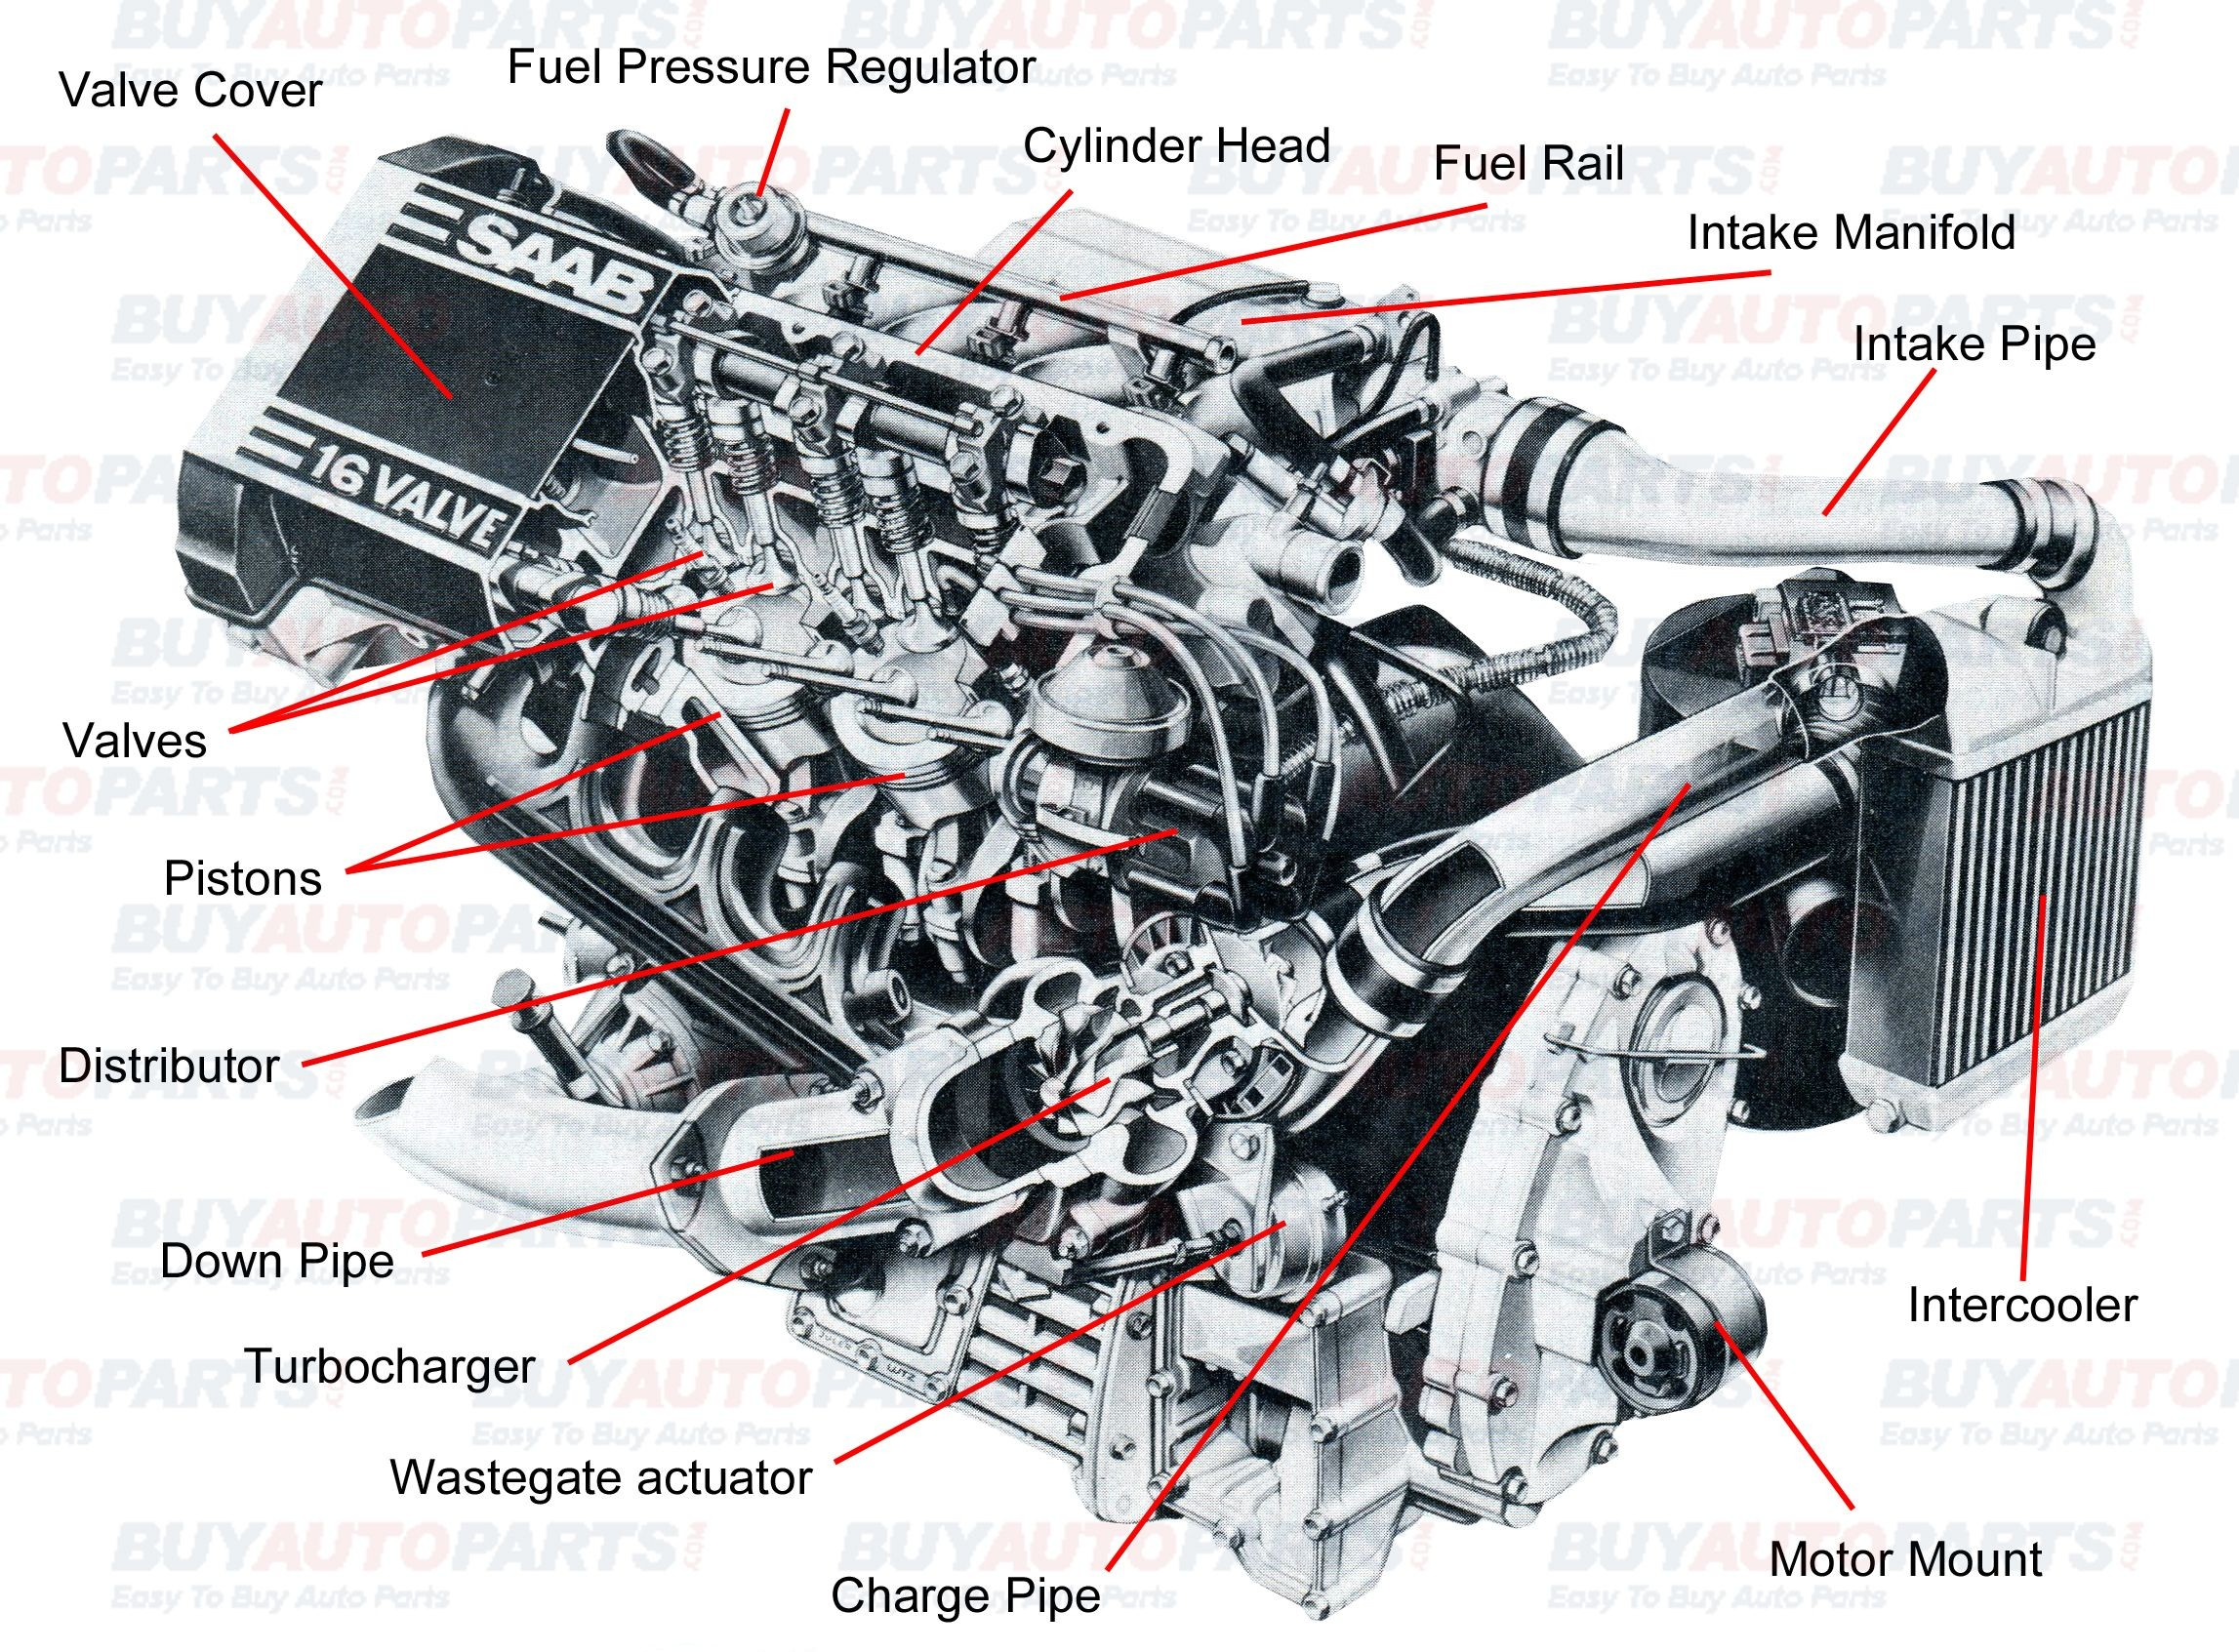 Car Parts Diagram with Names Pin by Jimmiejanet Testellamwfz On What Does An Engine with Turbo